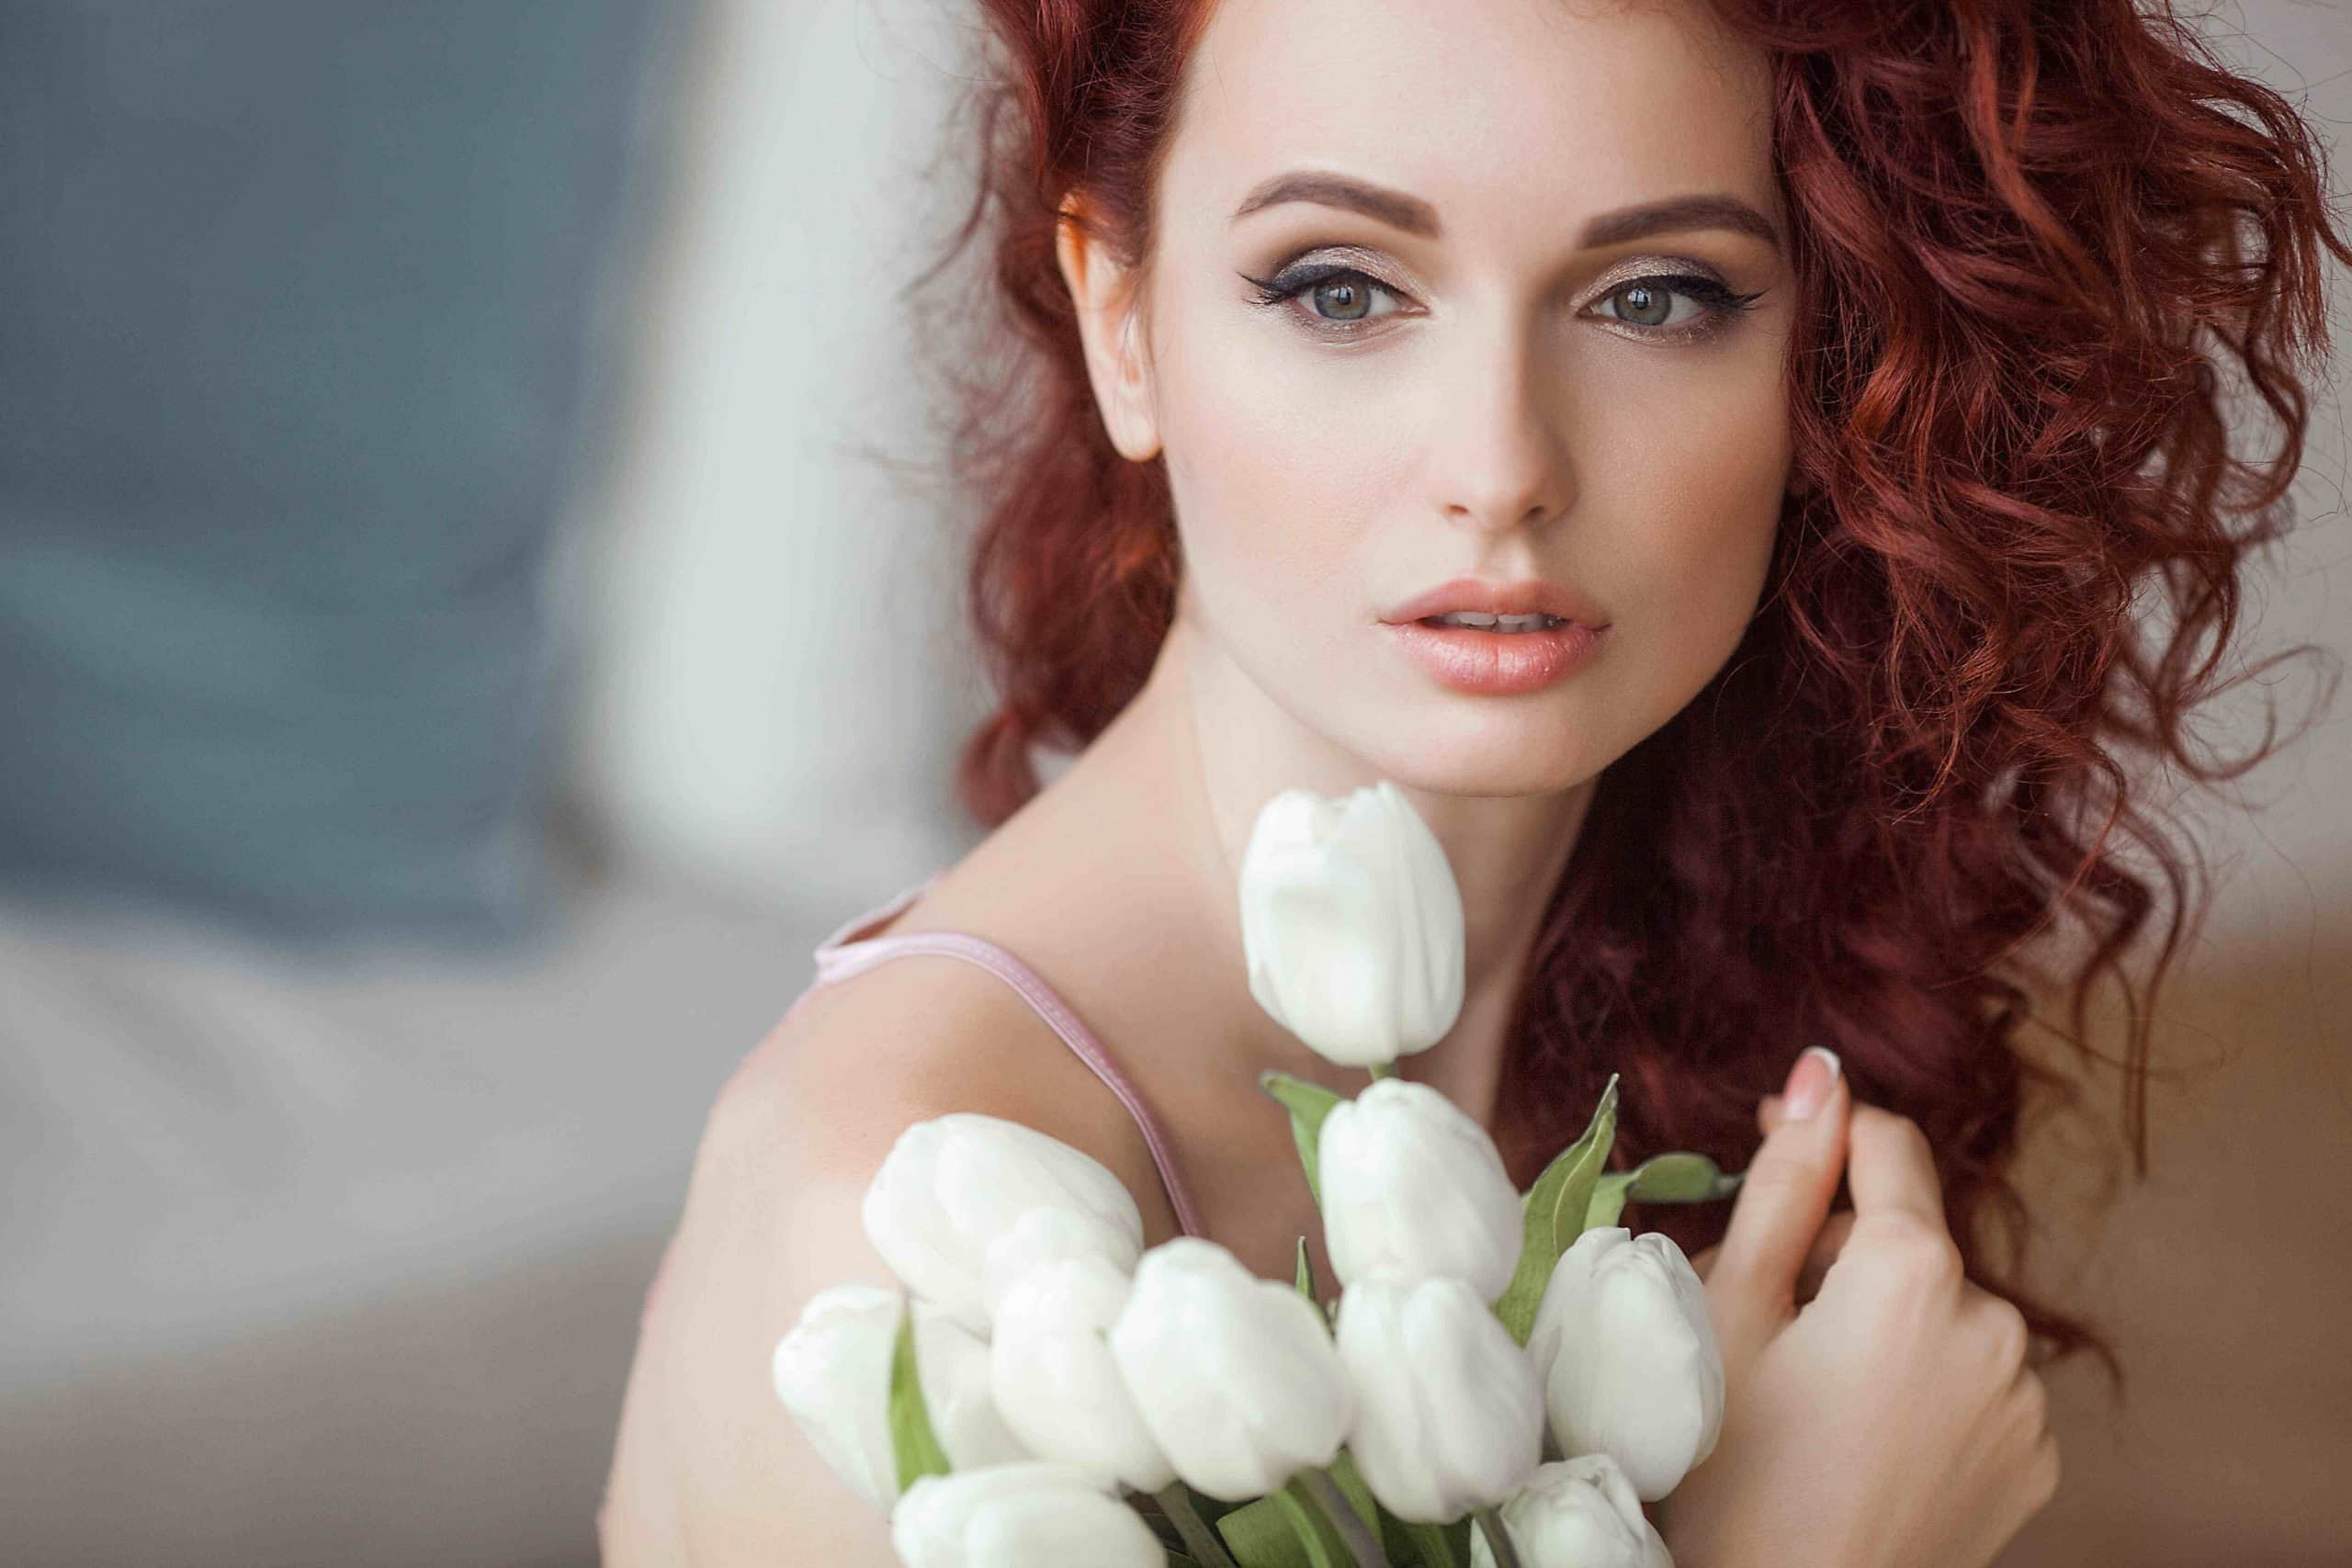 redhead-girl-flowers-image-image-scaled